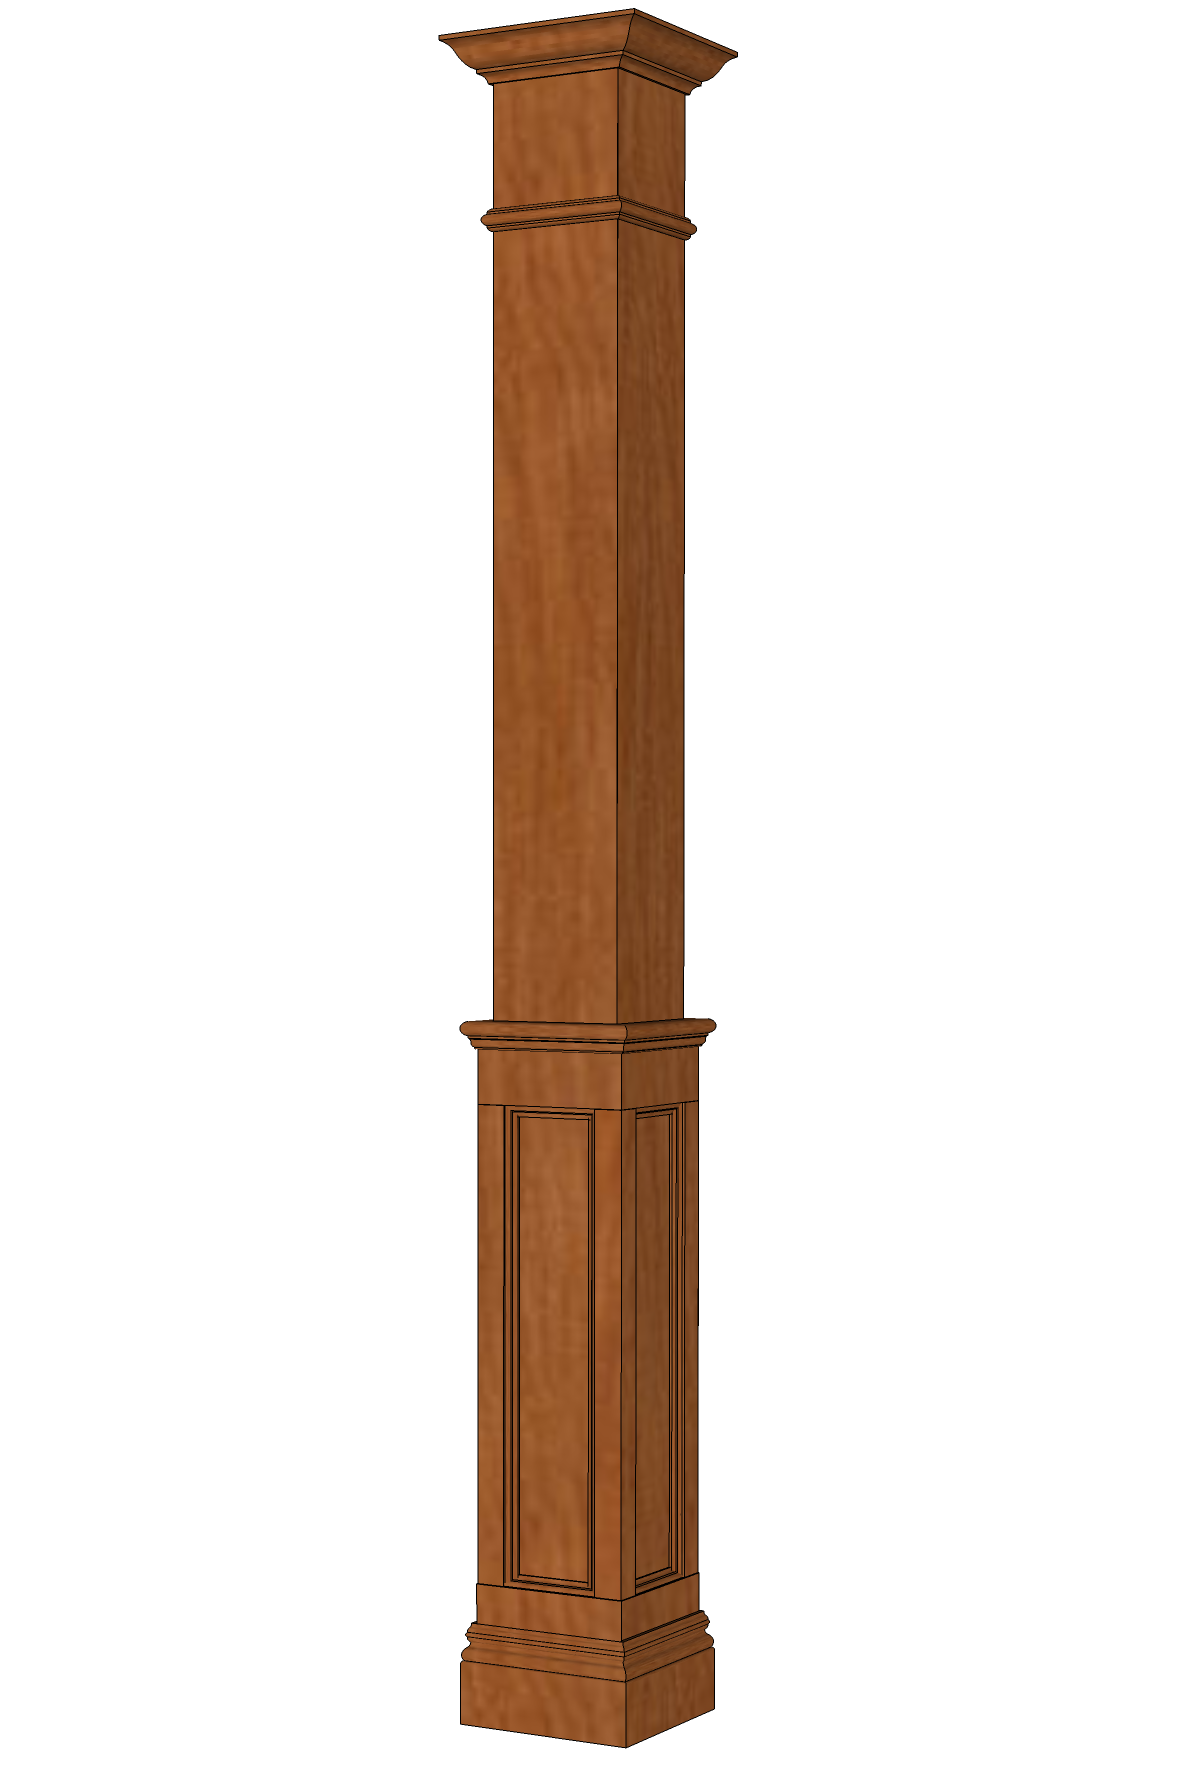 Square Column Trim : Square half recessed paneled hardwood column i elite trimworks